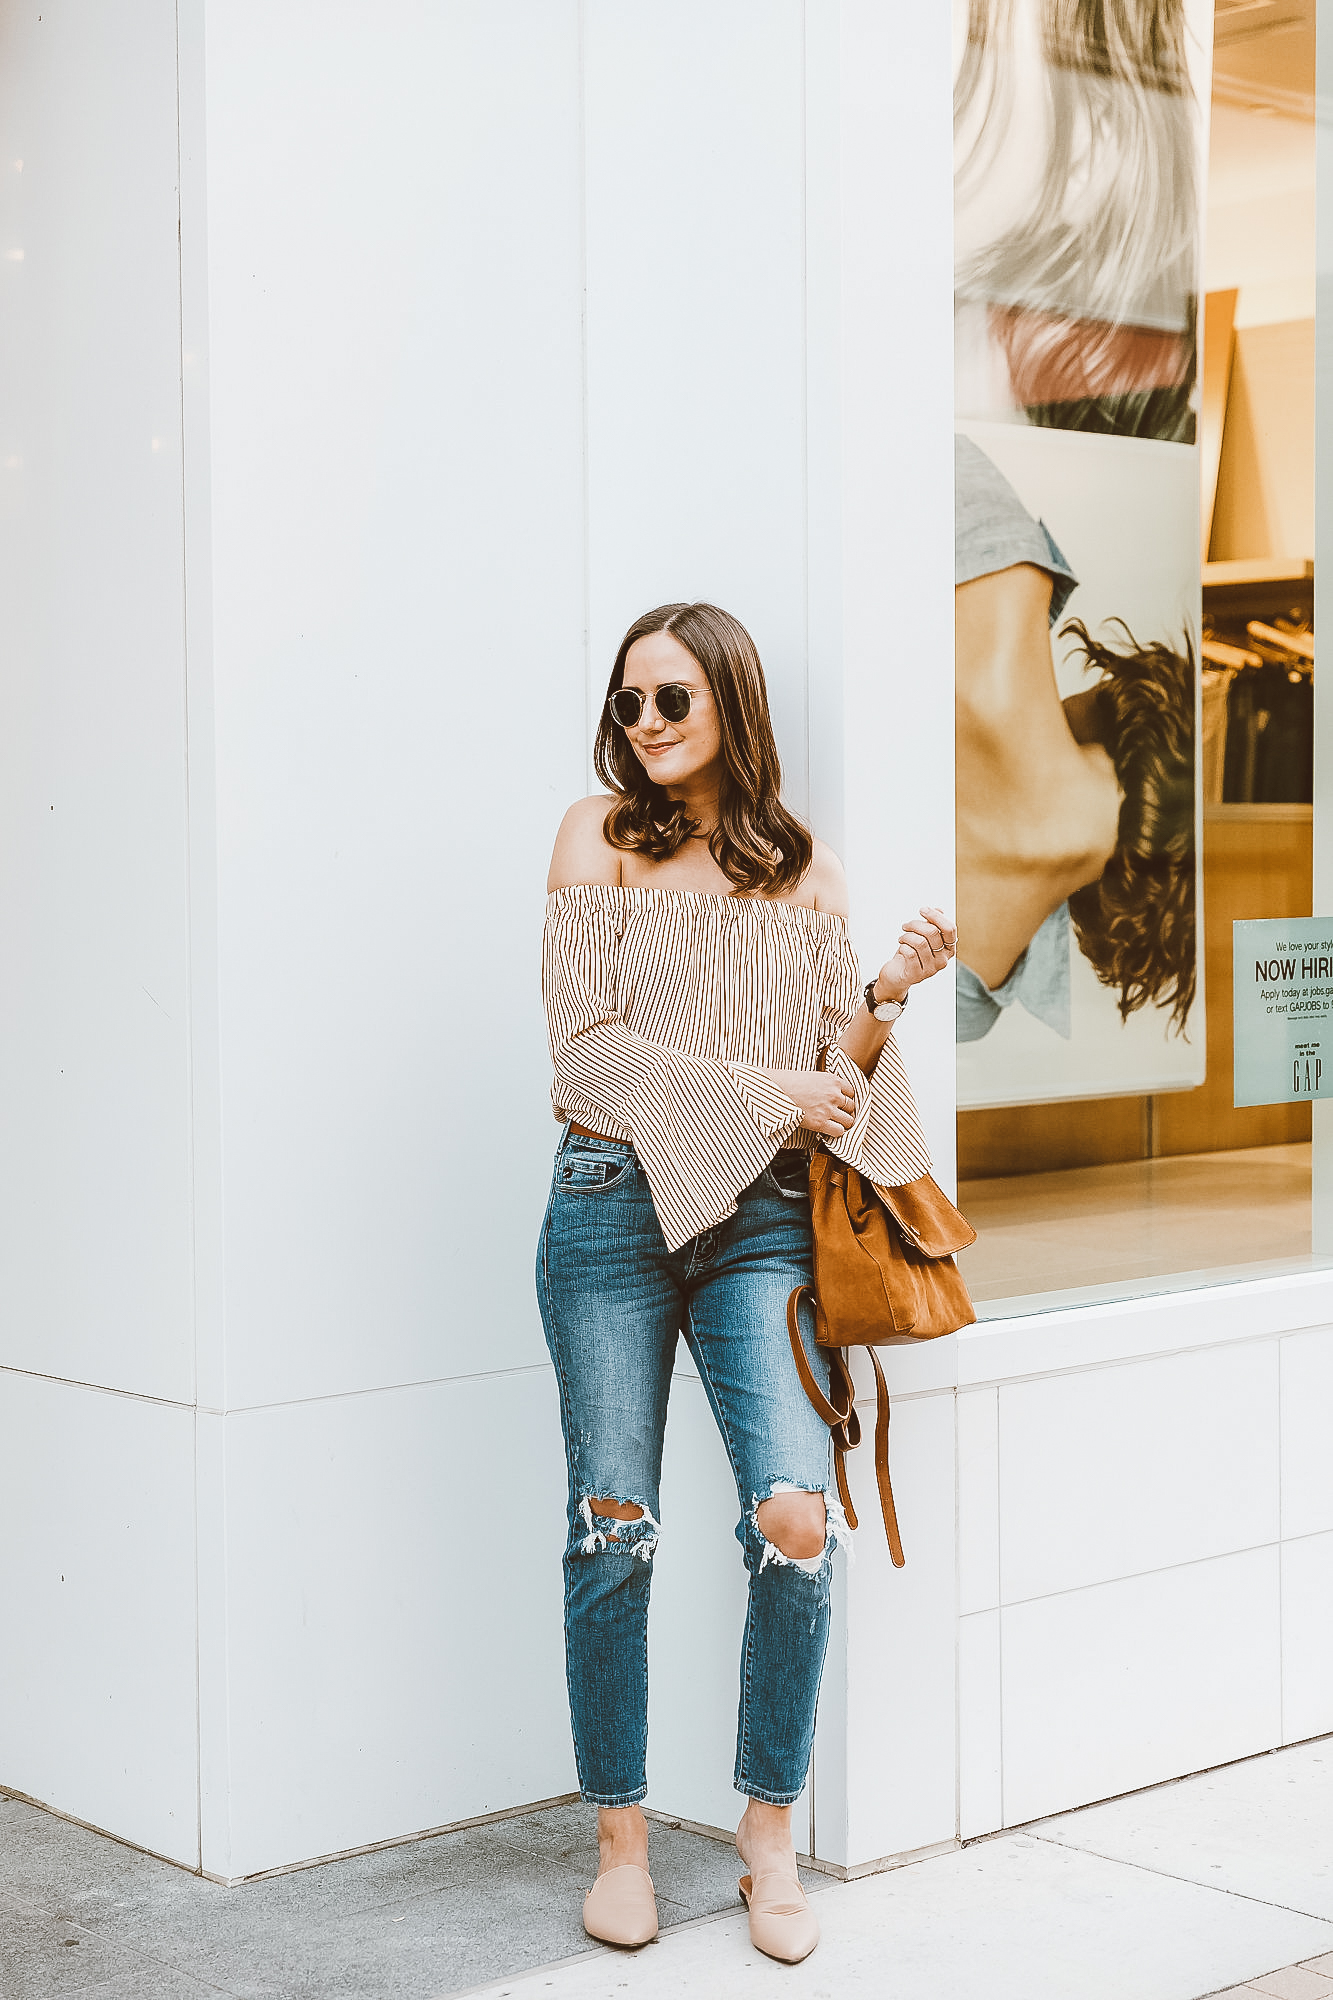 Vici Top  |  Vici Jeans  |  Vici Backpack  |  Vici Shoes all c/o  Ray-Ban Sunglasses